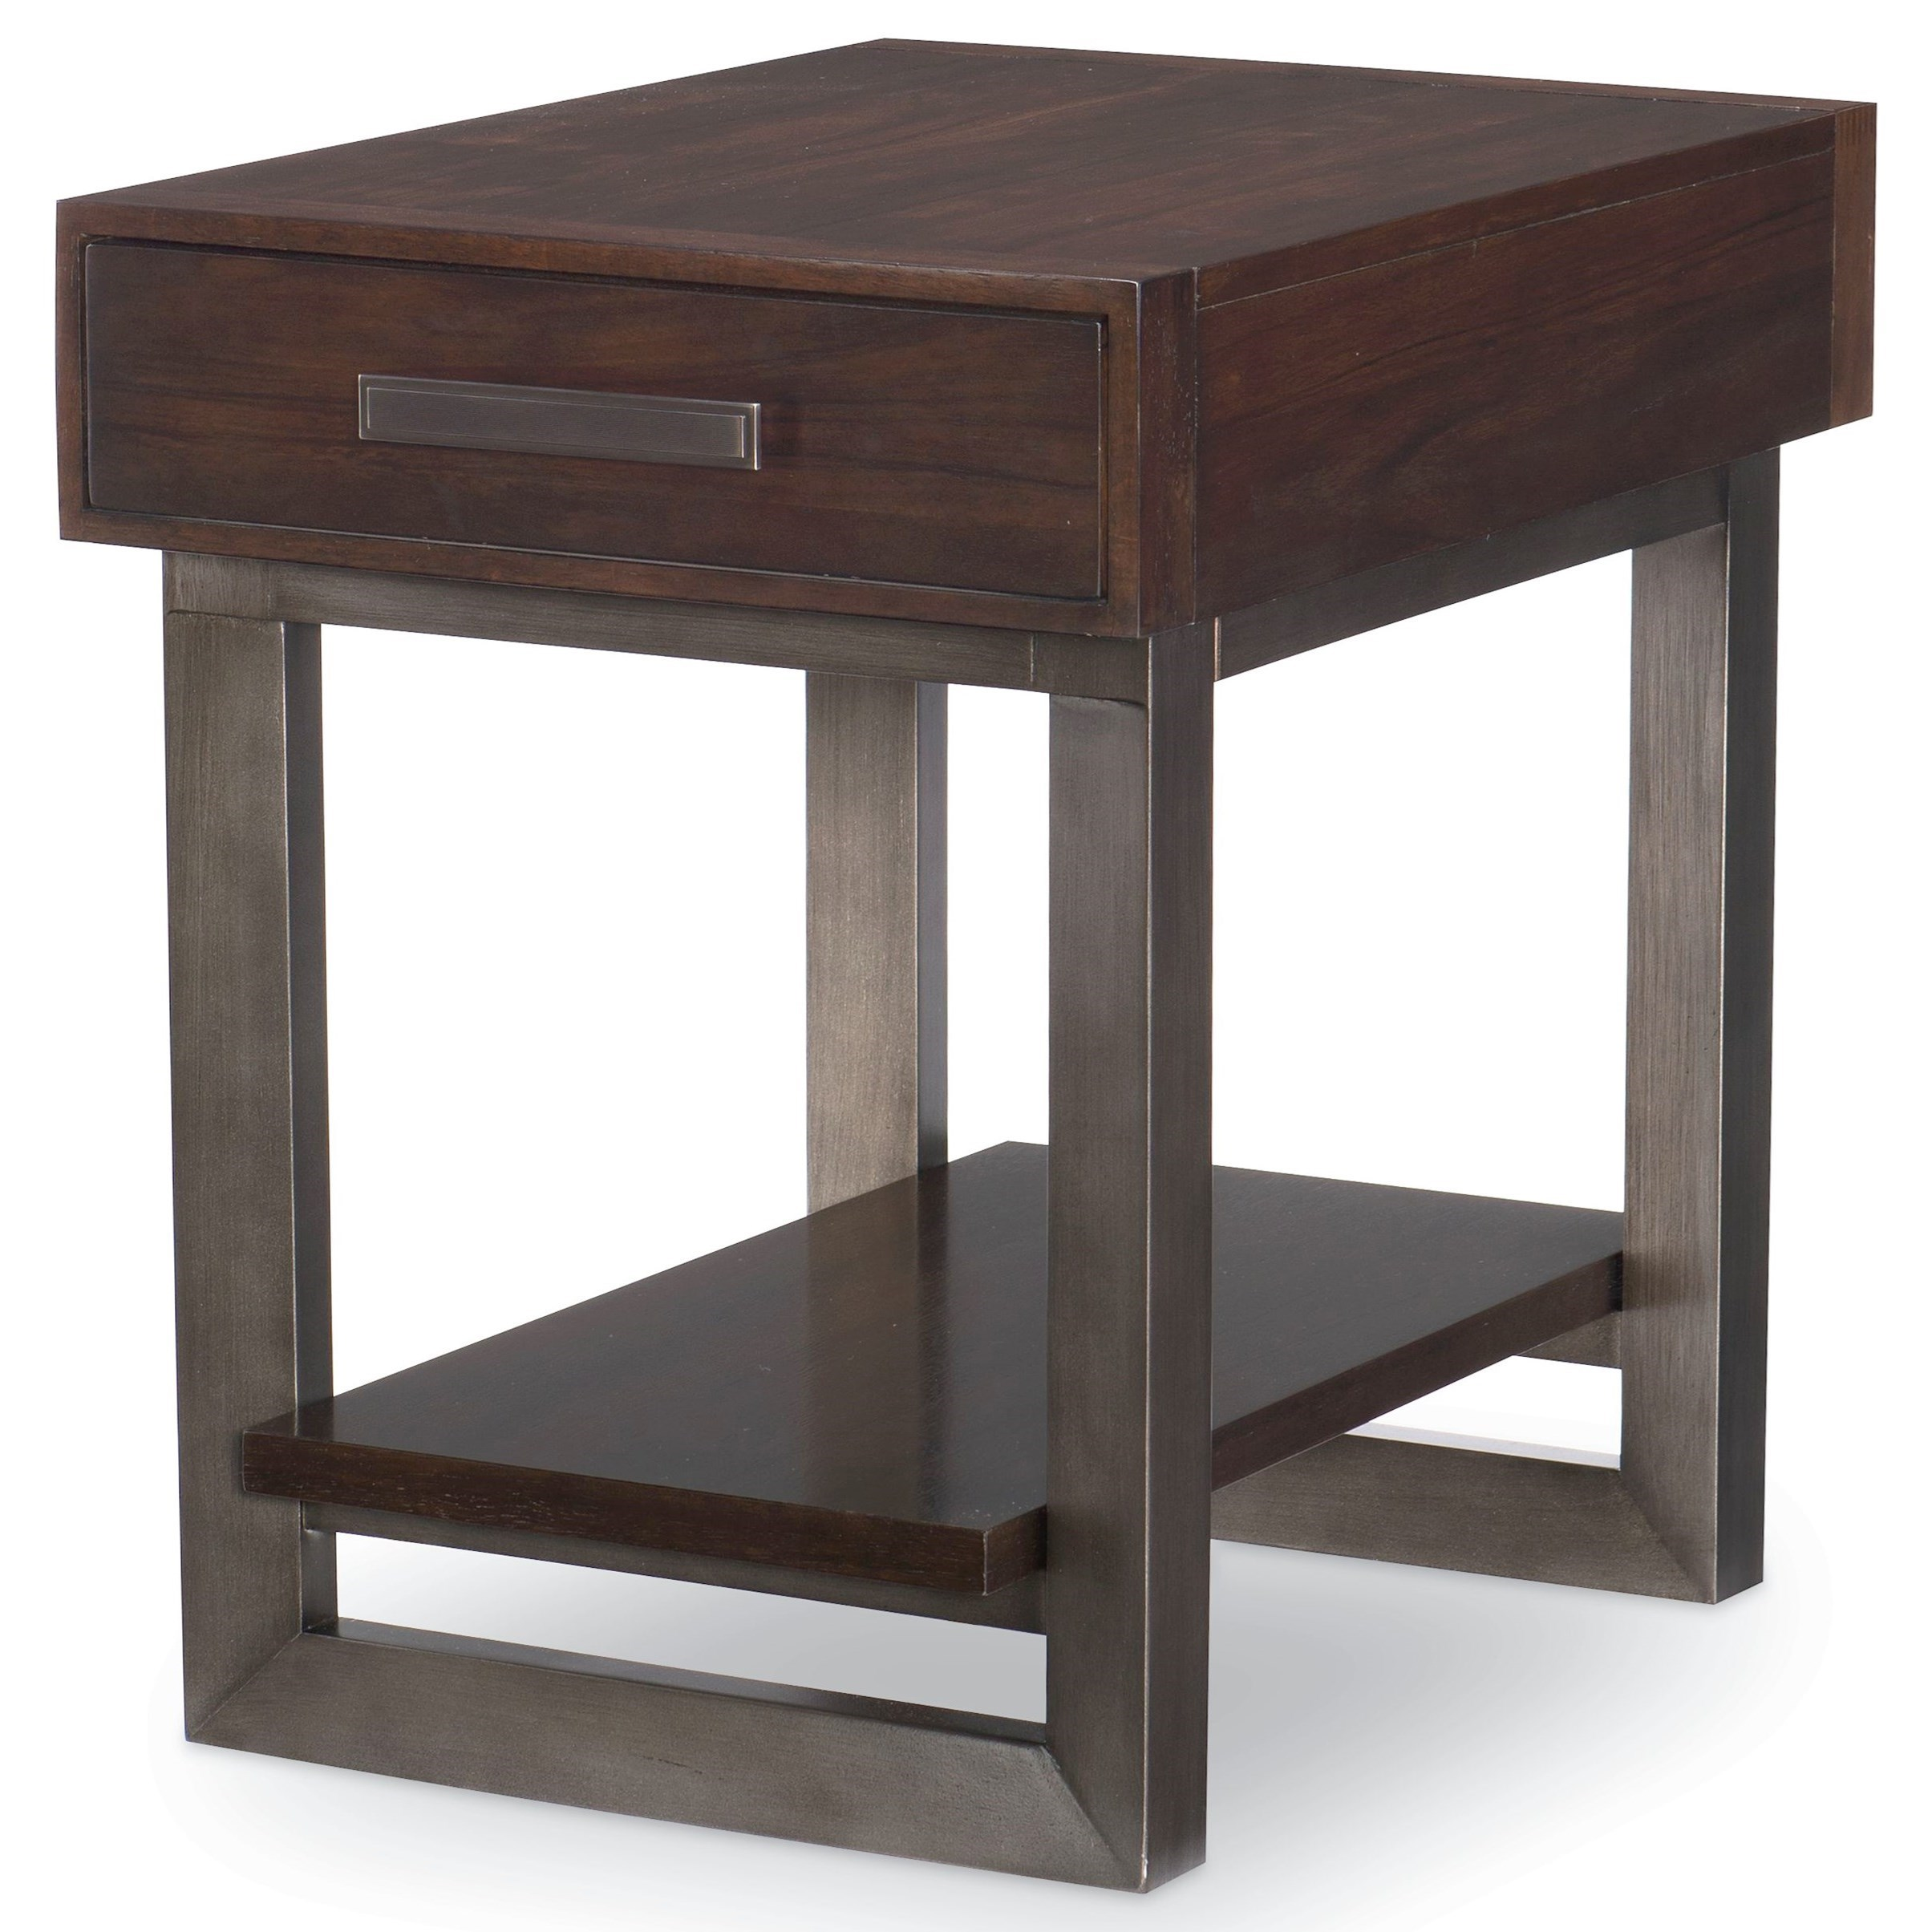 Classic Table Shapes Paldao Contemporary 1 Drawer End Table By Legacy Classic At Lindy S Furniture Company